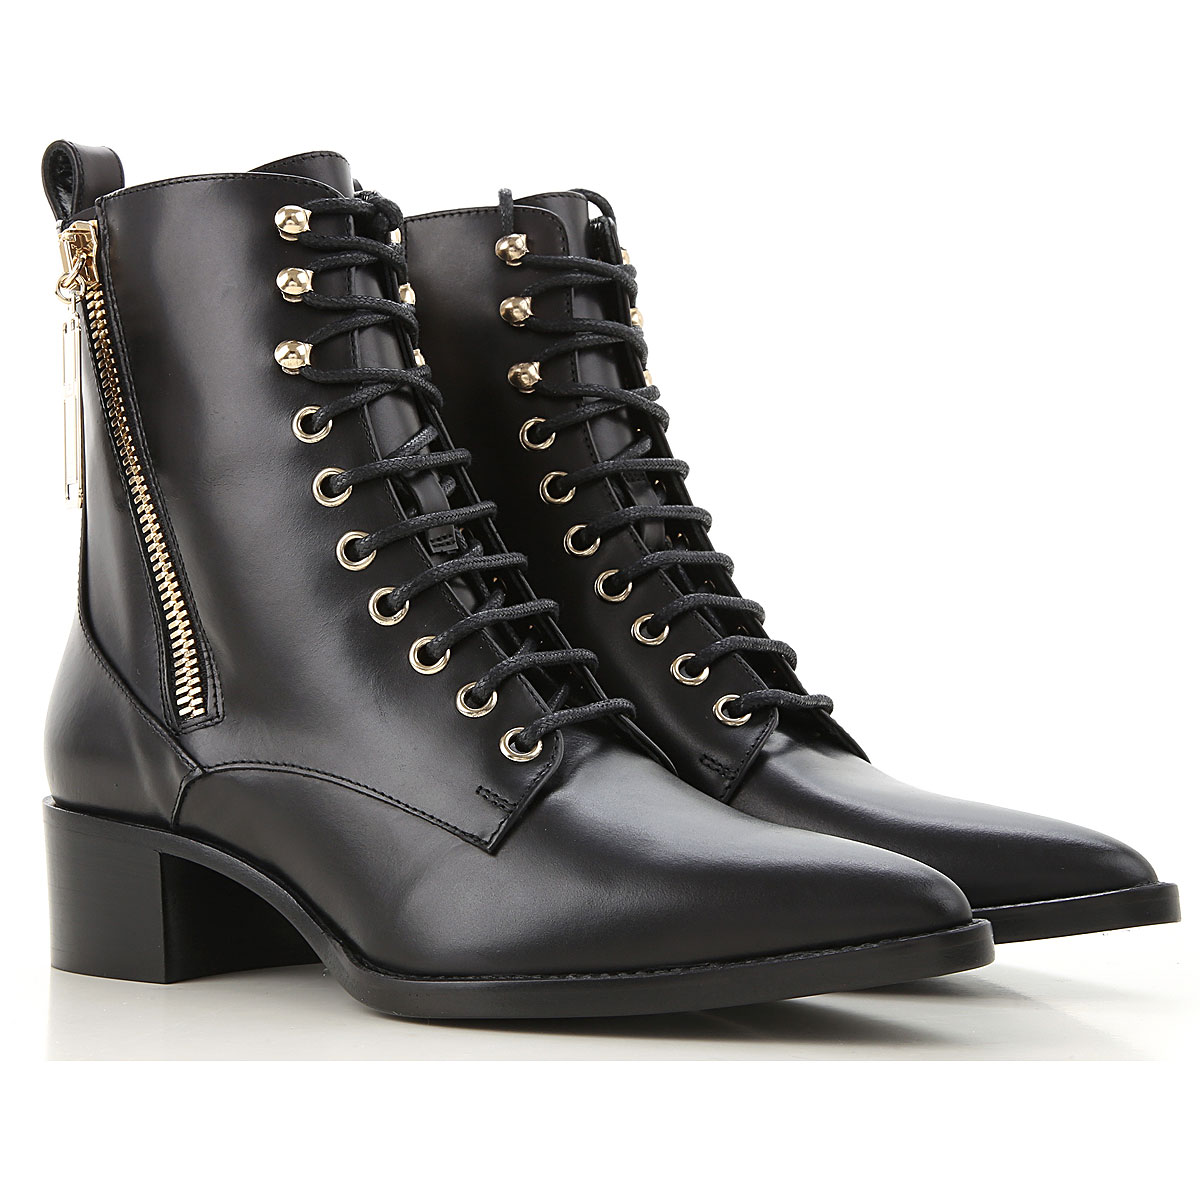 Elisabetta Franchi Boots for Women, Booties On Sale, Black, Leather, 2019, 8 9